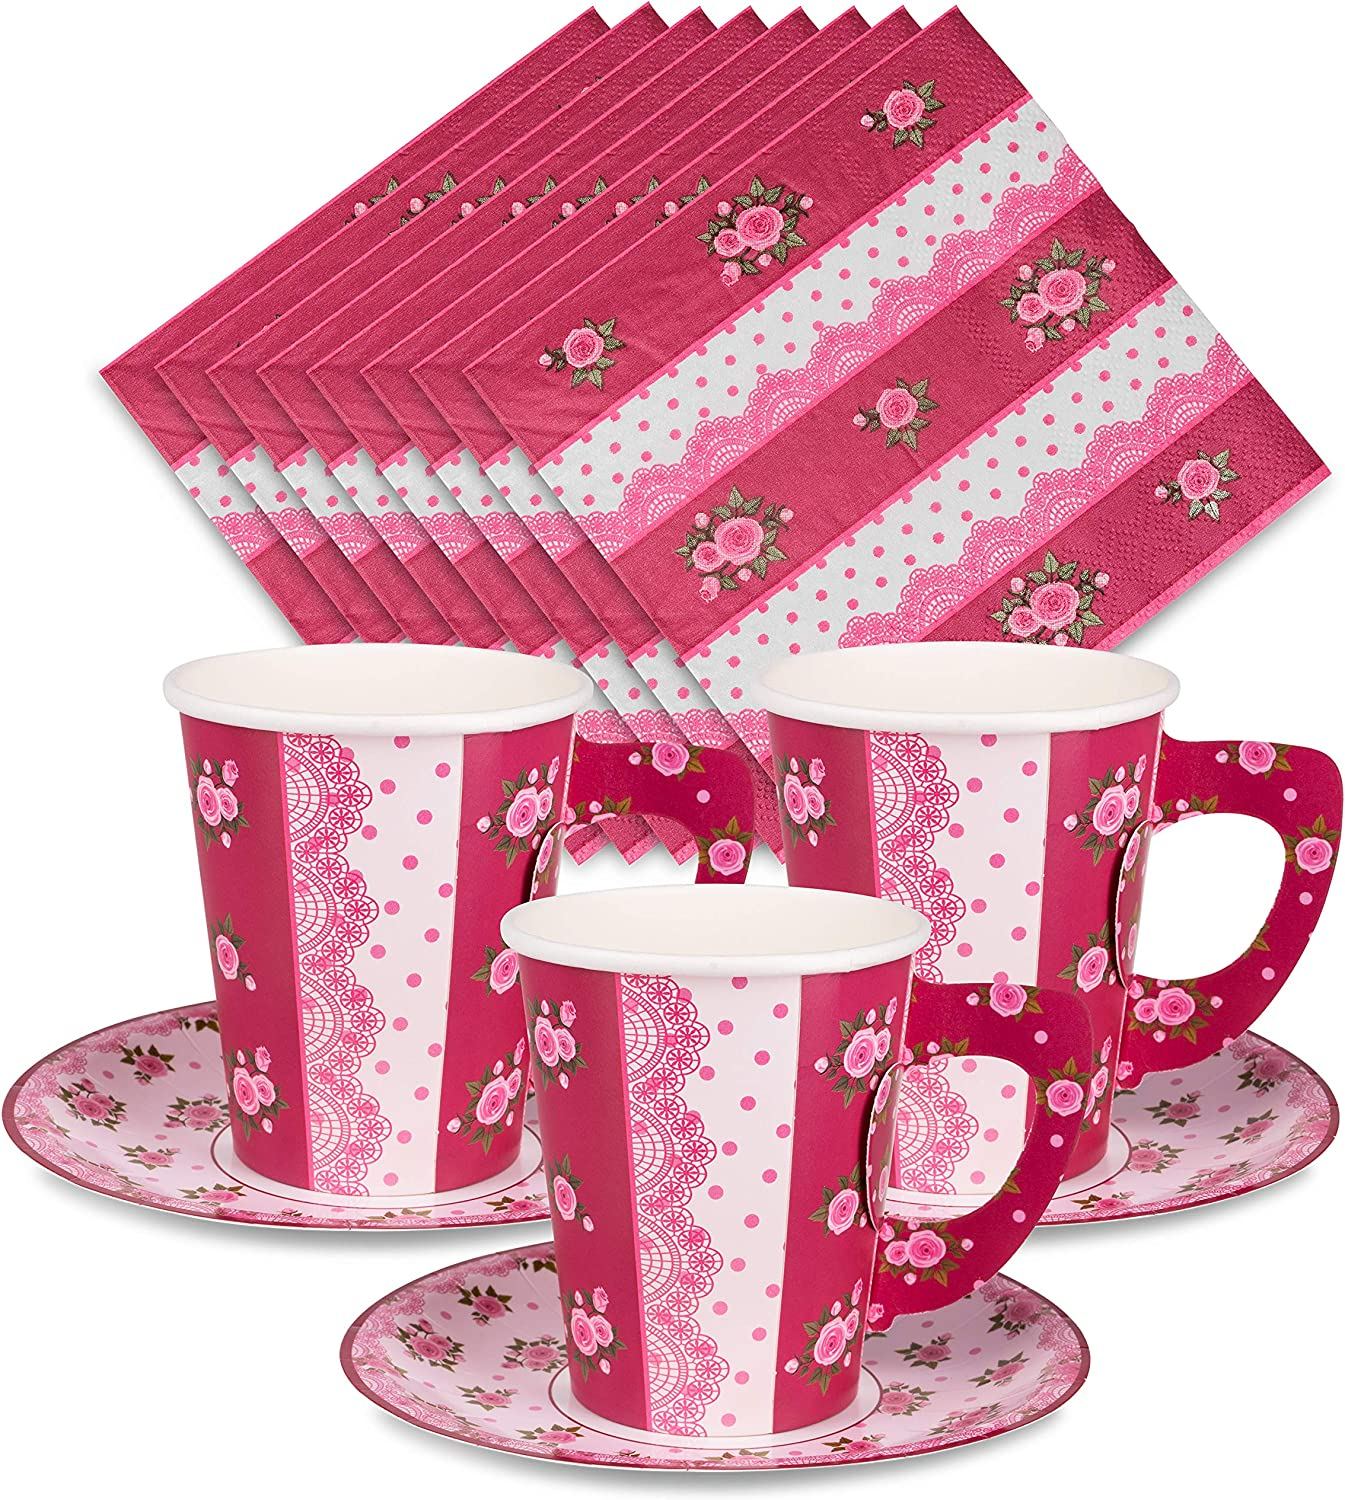 Tea Party Decorations - 24 Paper Tea Cups, Tea Party Plates, Tea Party Napkins - Disposable Paper Teacups and Saucer Sets for Birthday, Baby Shower, Wedding, Fancy Princess Theme Little Girls Parties